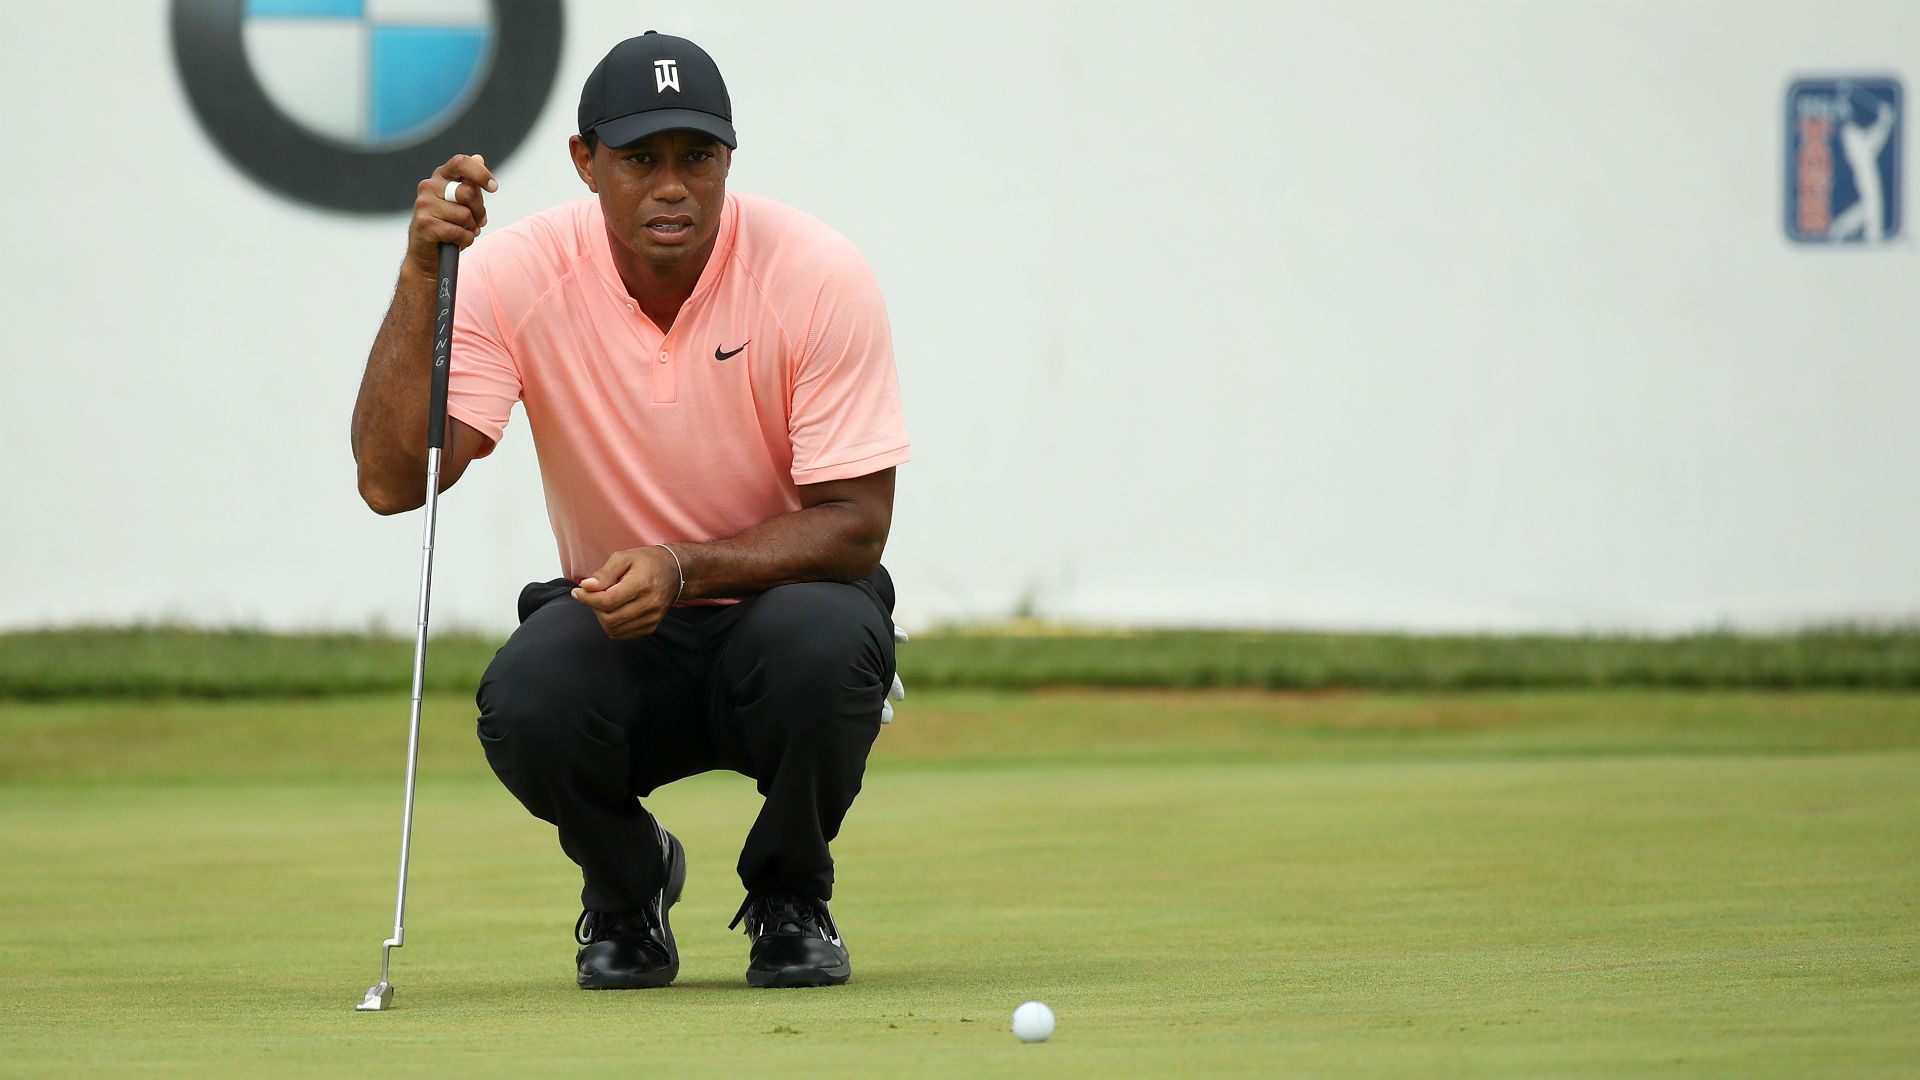 Tiger Woods shows FedEx Cup Playoffs improvement, talks training